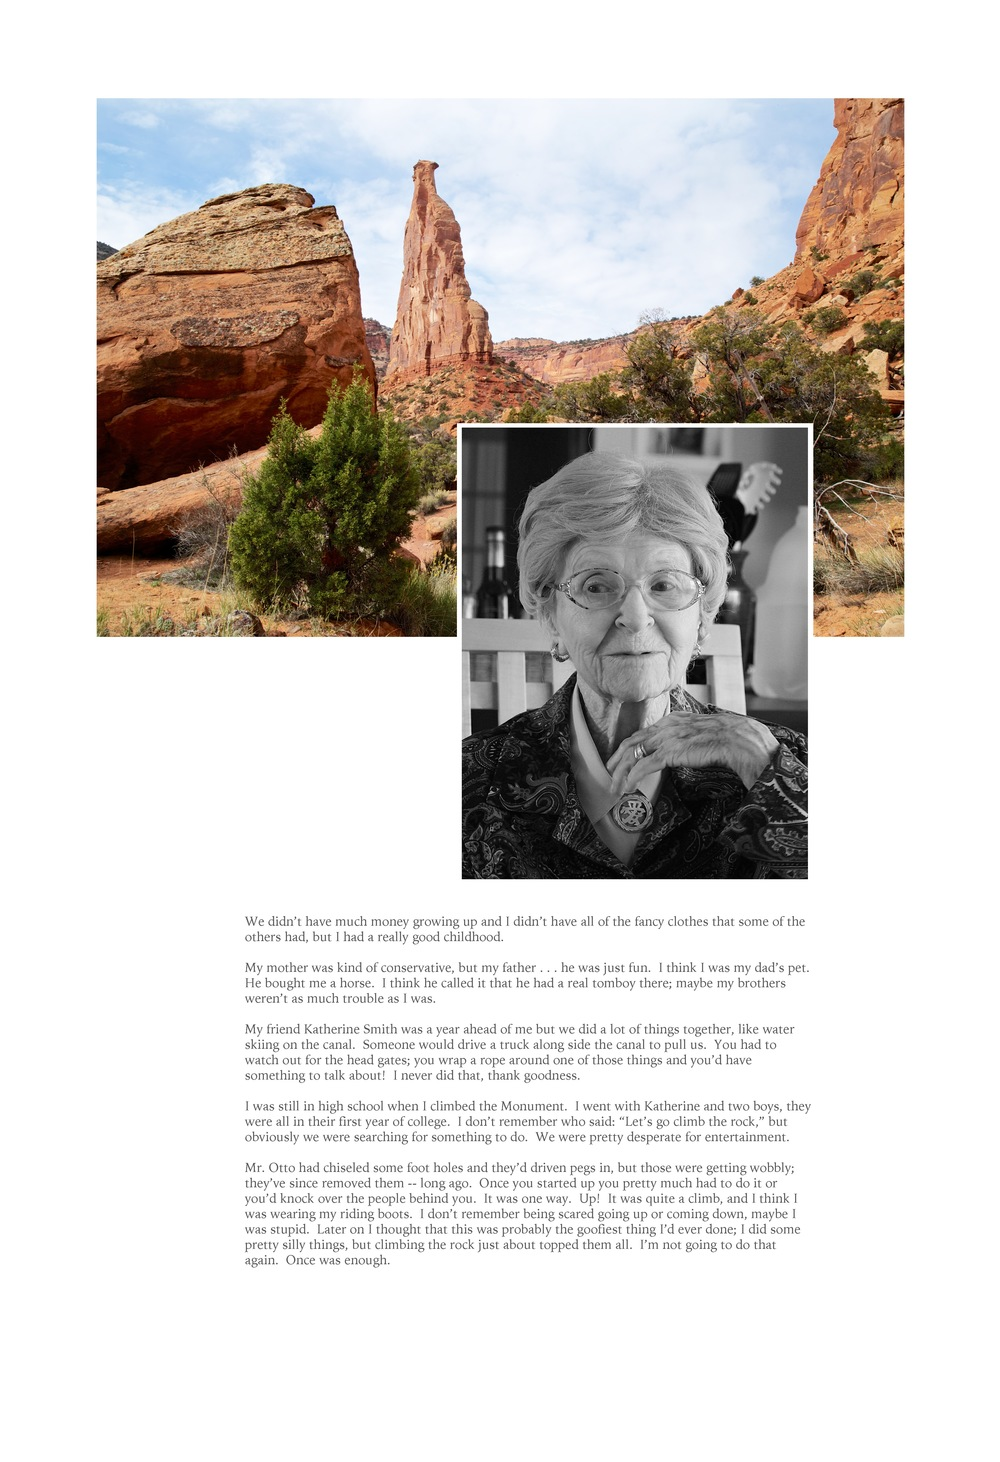 """I was still in high school when I climbed the Monument.  I went with Katherine and two boys, they were all in their first year of college. I don't remember who said: ""Let's go climb the rock,"" but obviously we were searching for something to do.  We were pretty desperate for entertainment.""  Dorothy Griffin"